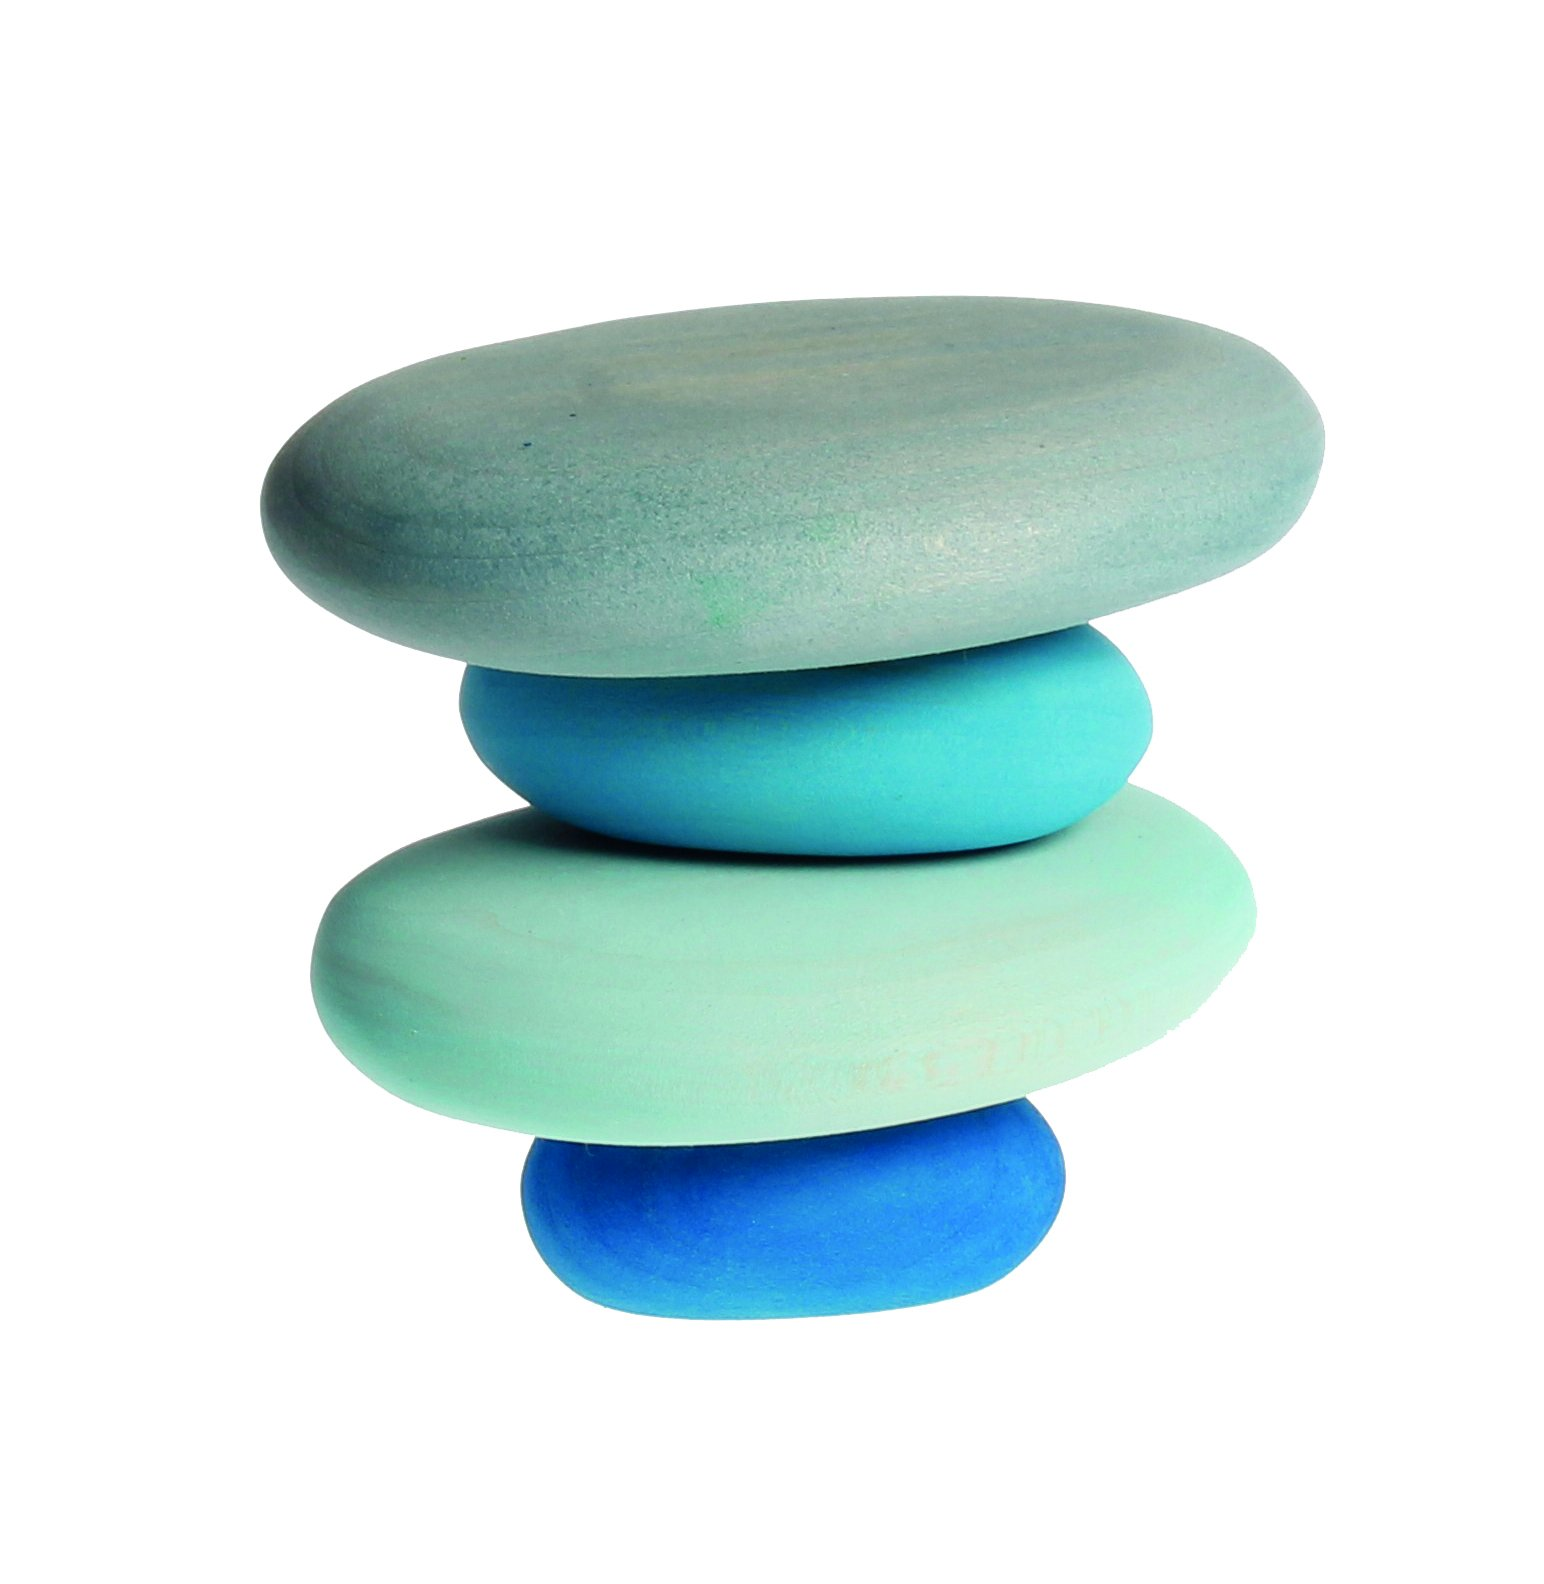 River Pebbles Wooden Stacking Stones for Creative Building & Balance Games